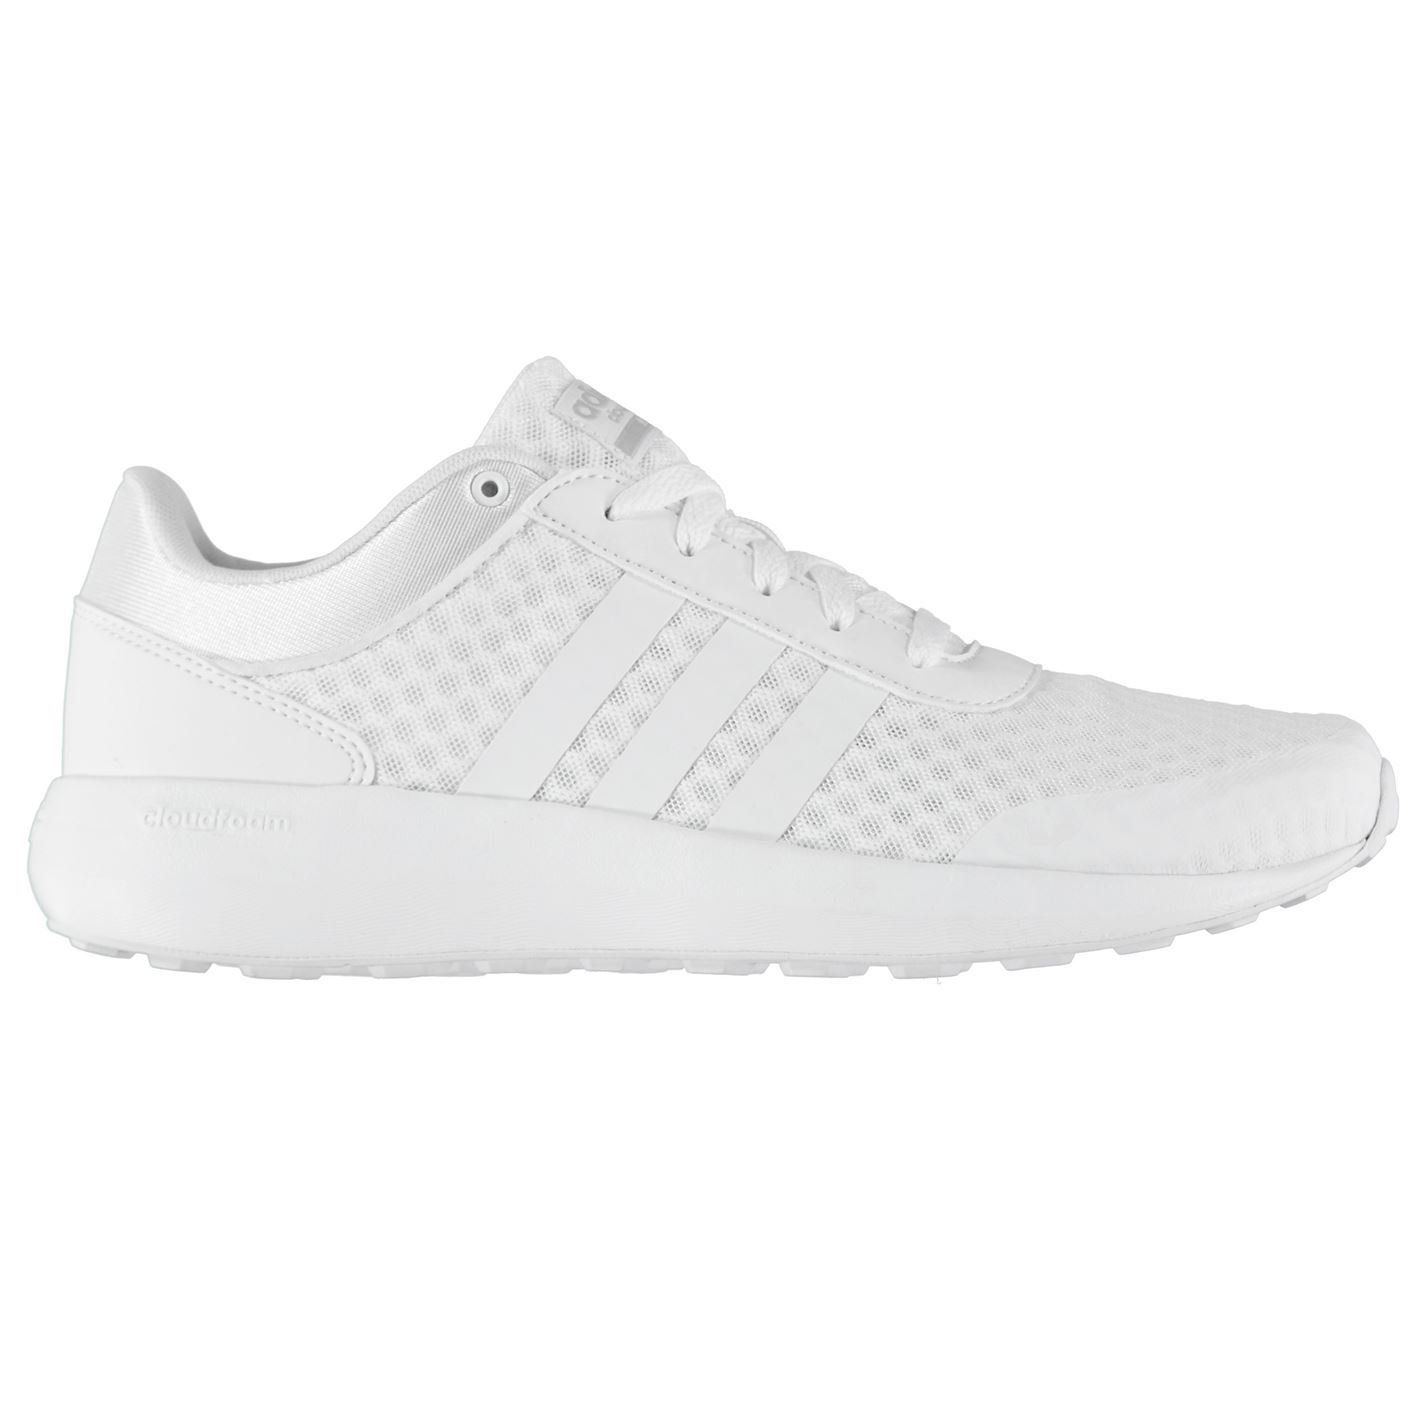 ... adidas Cloudfoam Race Trainers Mens White Athletic Sneakers Shoes ...